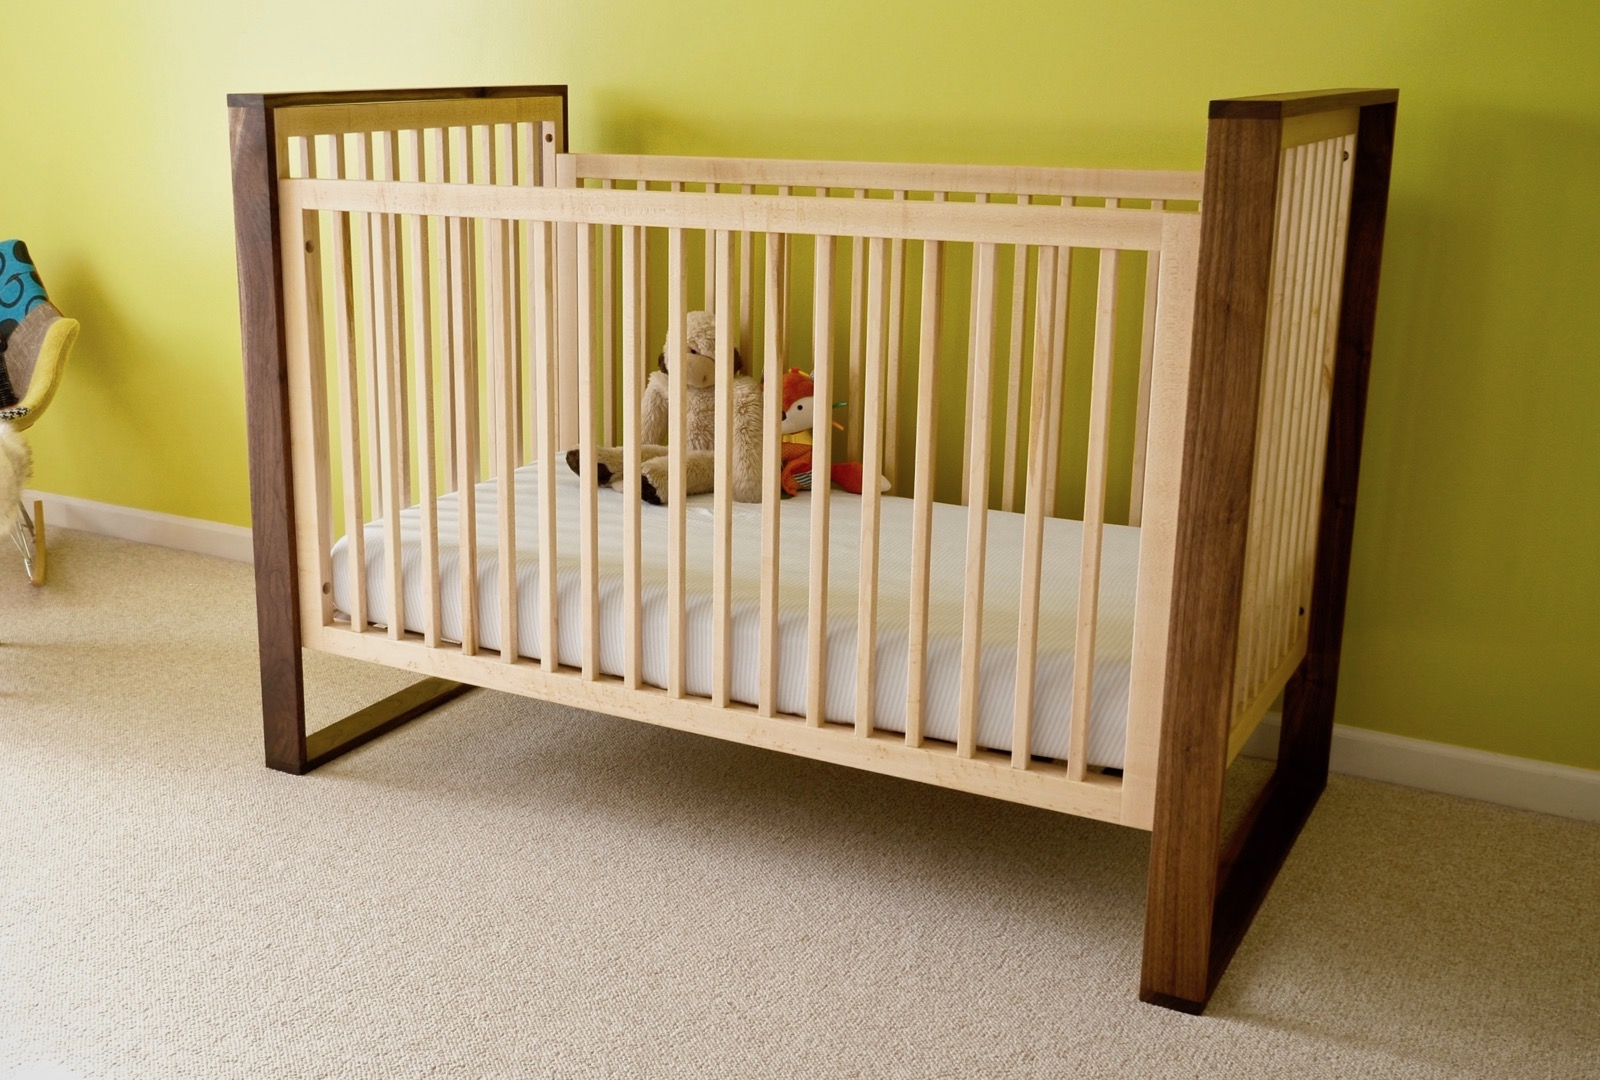 Attirant How To Build A Mid Century Modern Walnut And Maple Baby Crib U2014 Crafted  Workshop